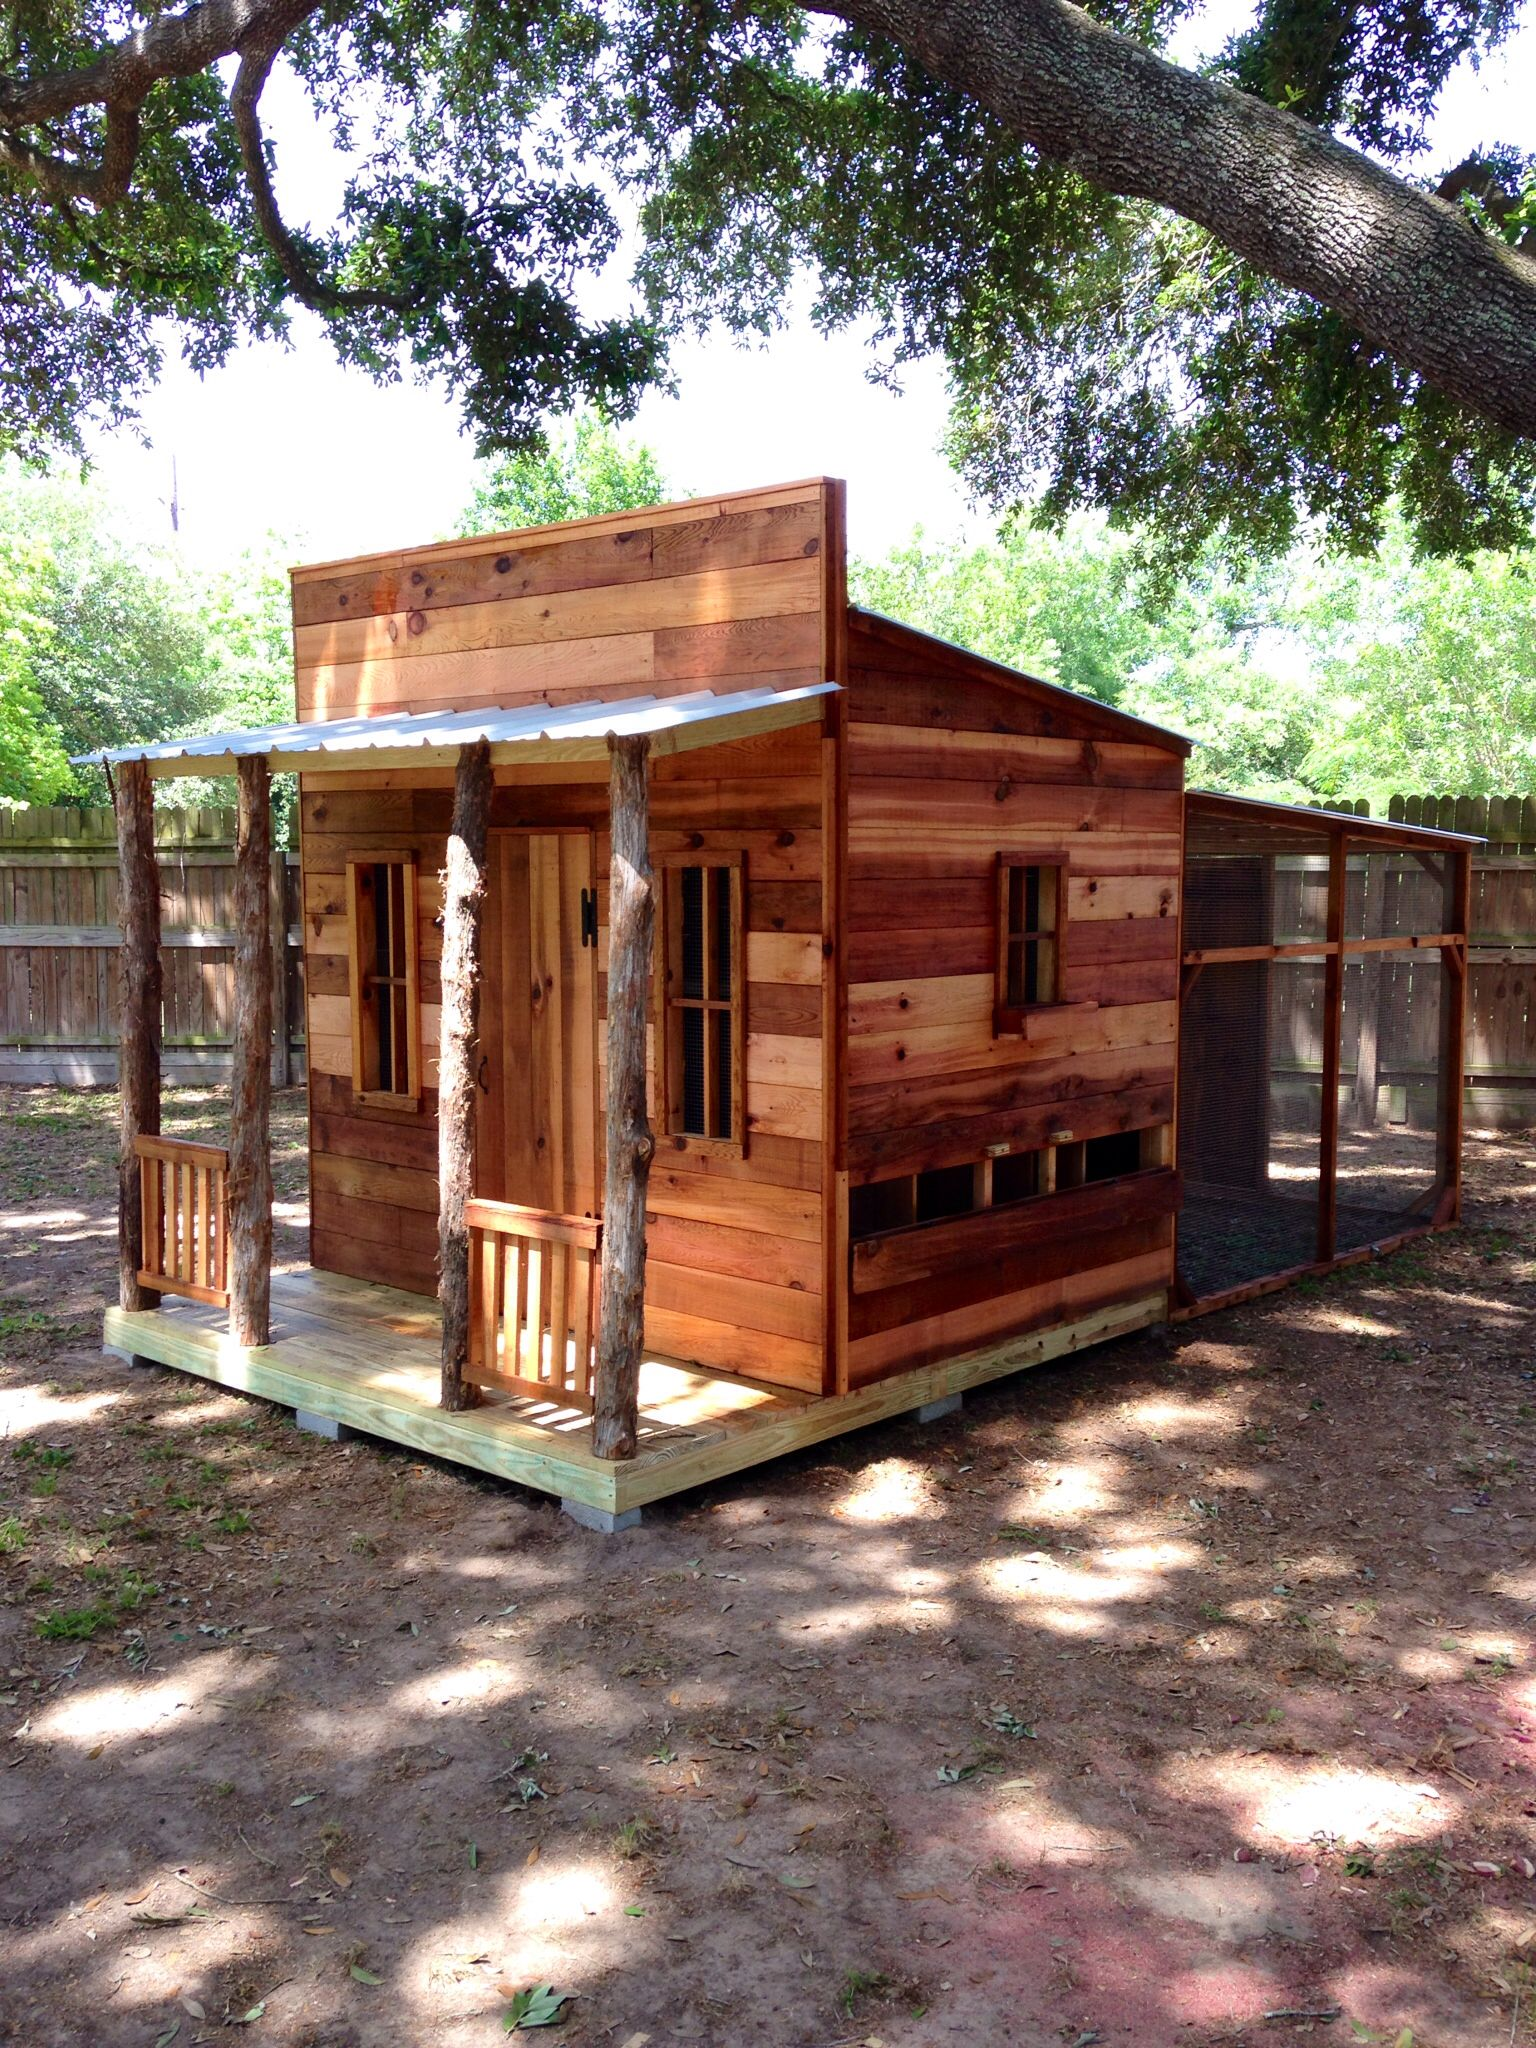 6x8 Western Town Chicken Coop With Porch And Railing